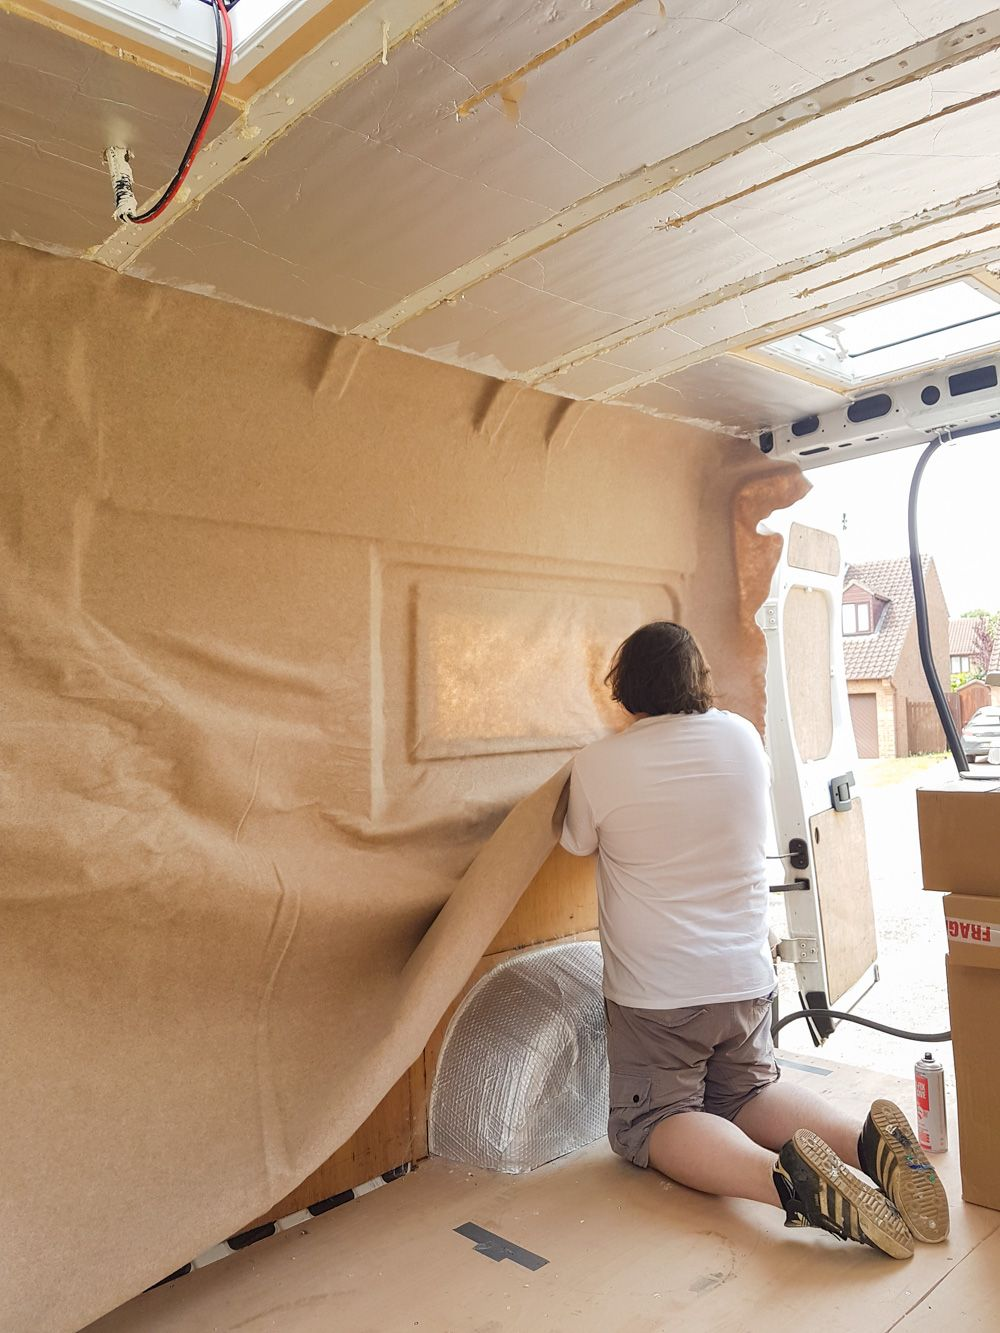 We Decided That Rather Than Paneling The Van Walls With Wood